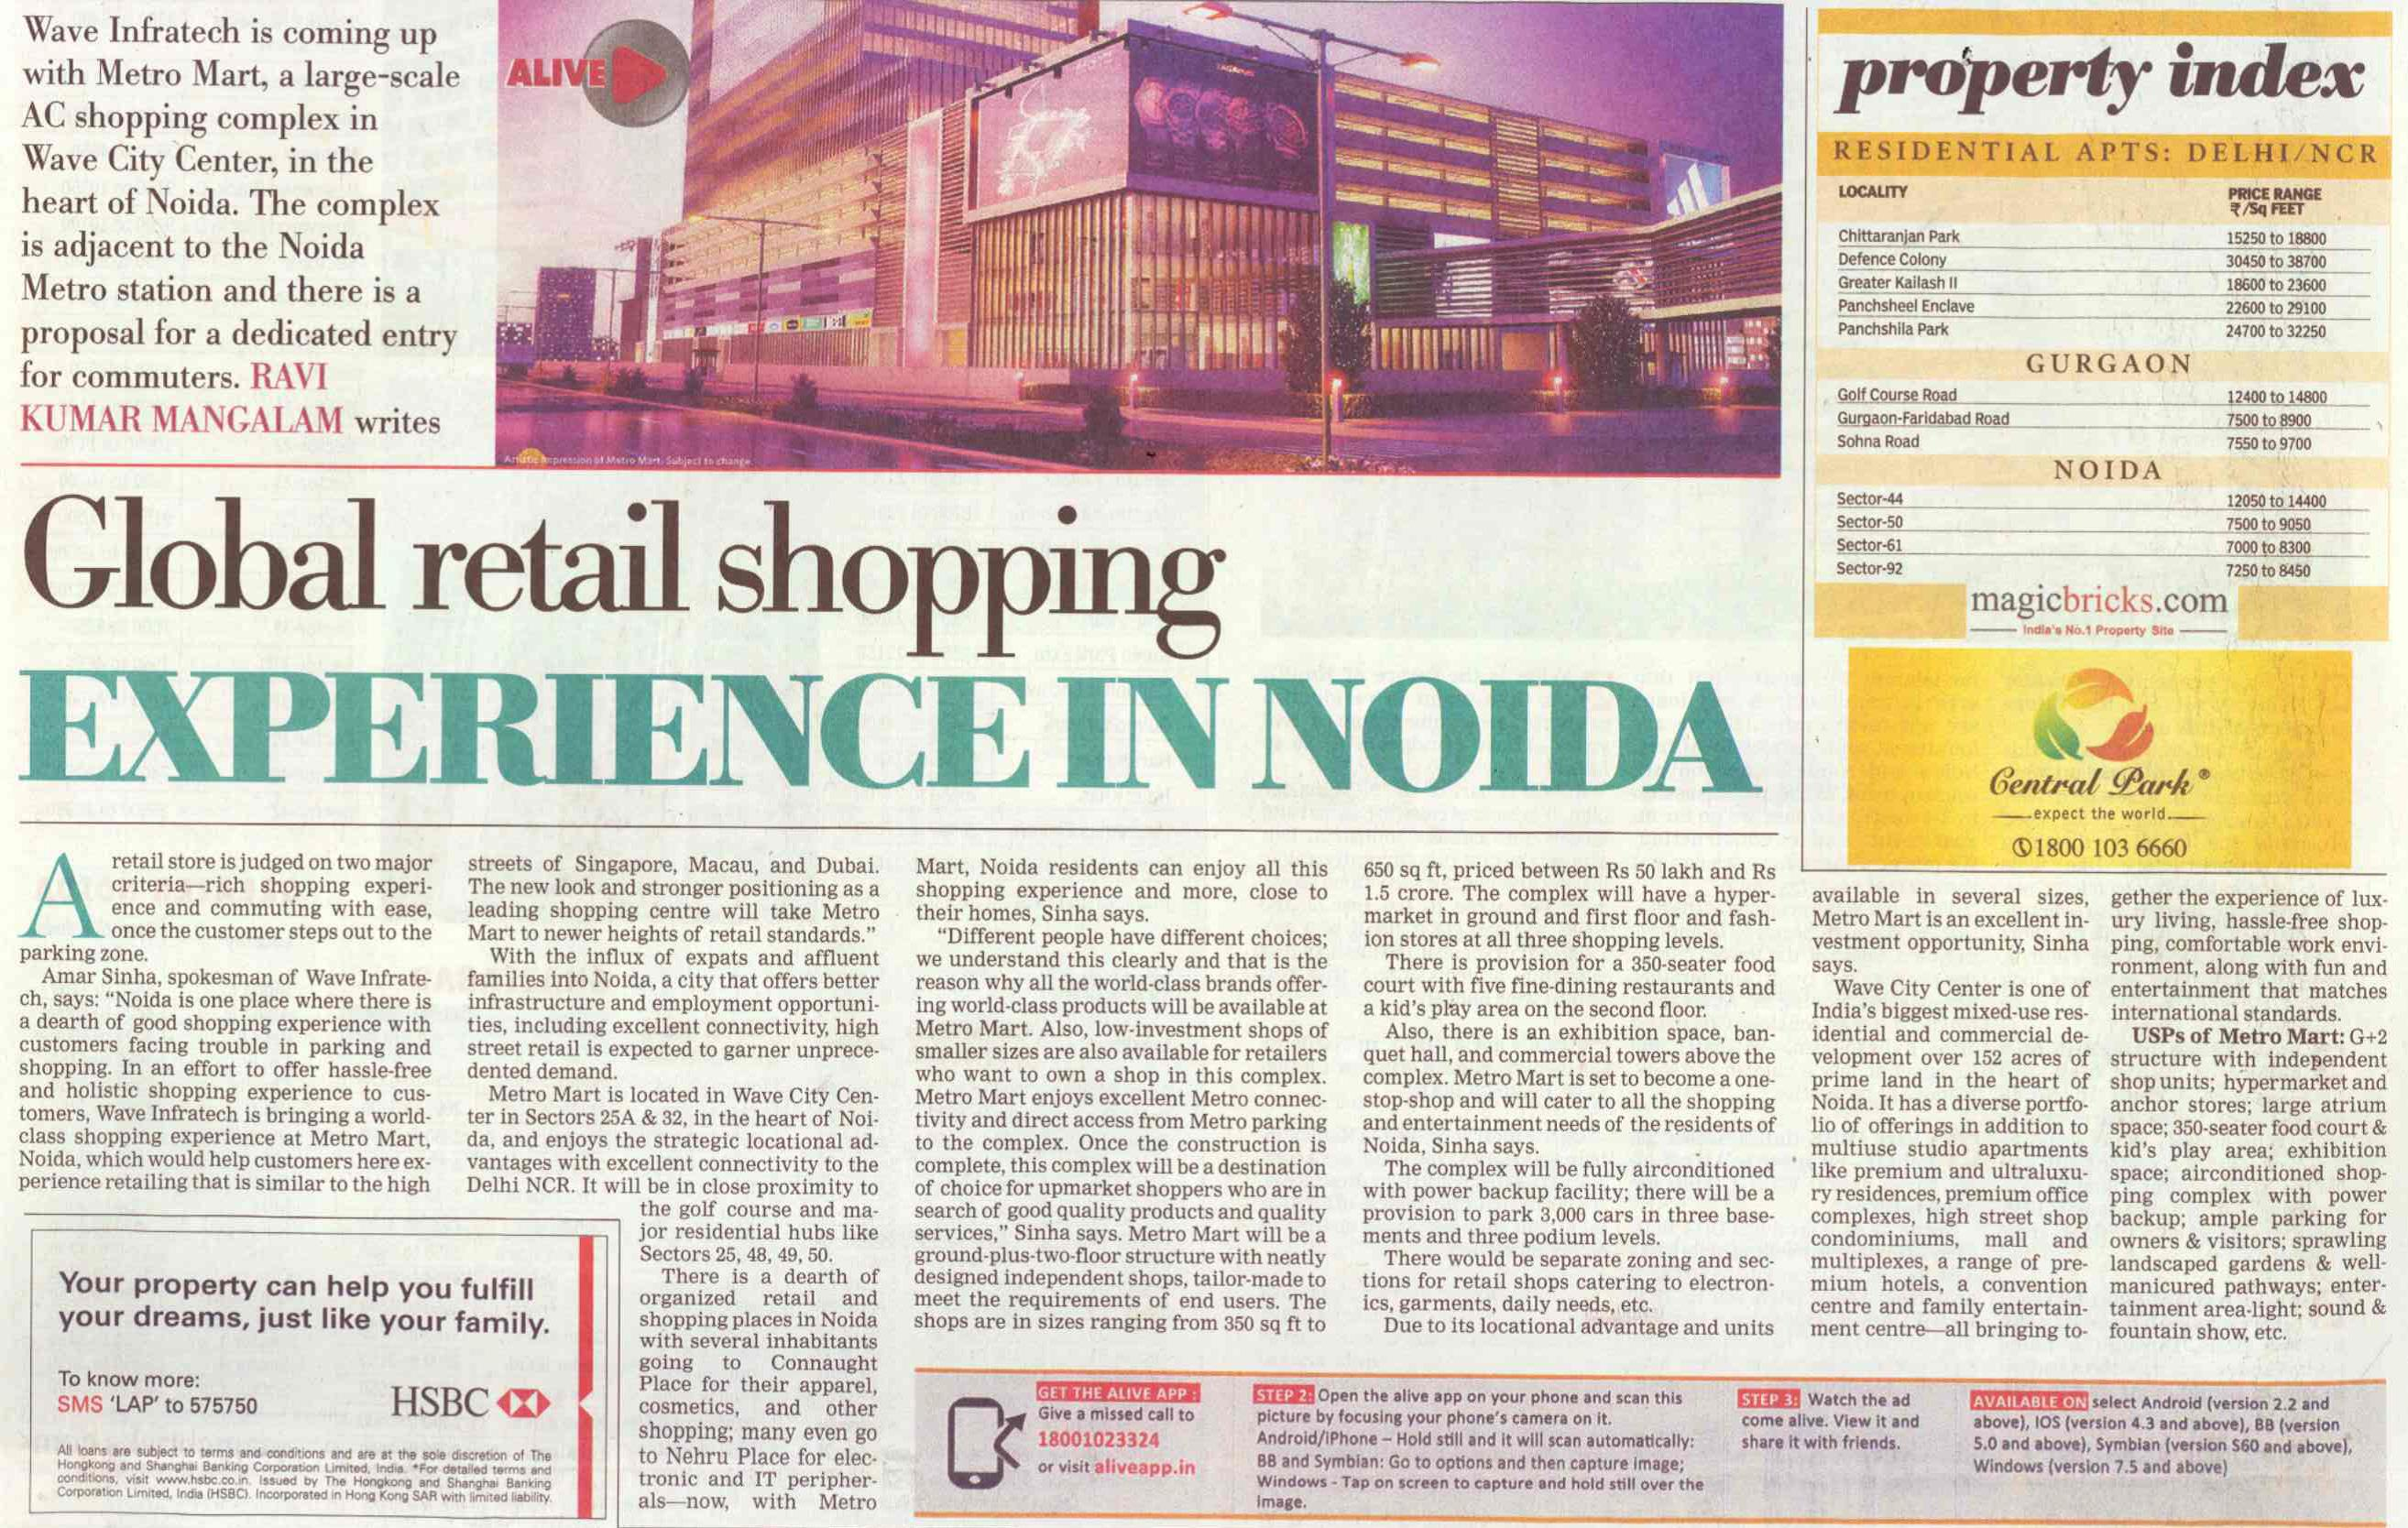 Global retail shopping experience in Noida